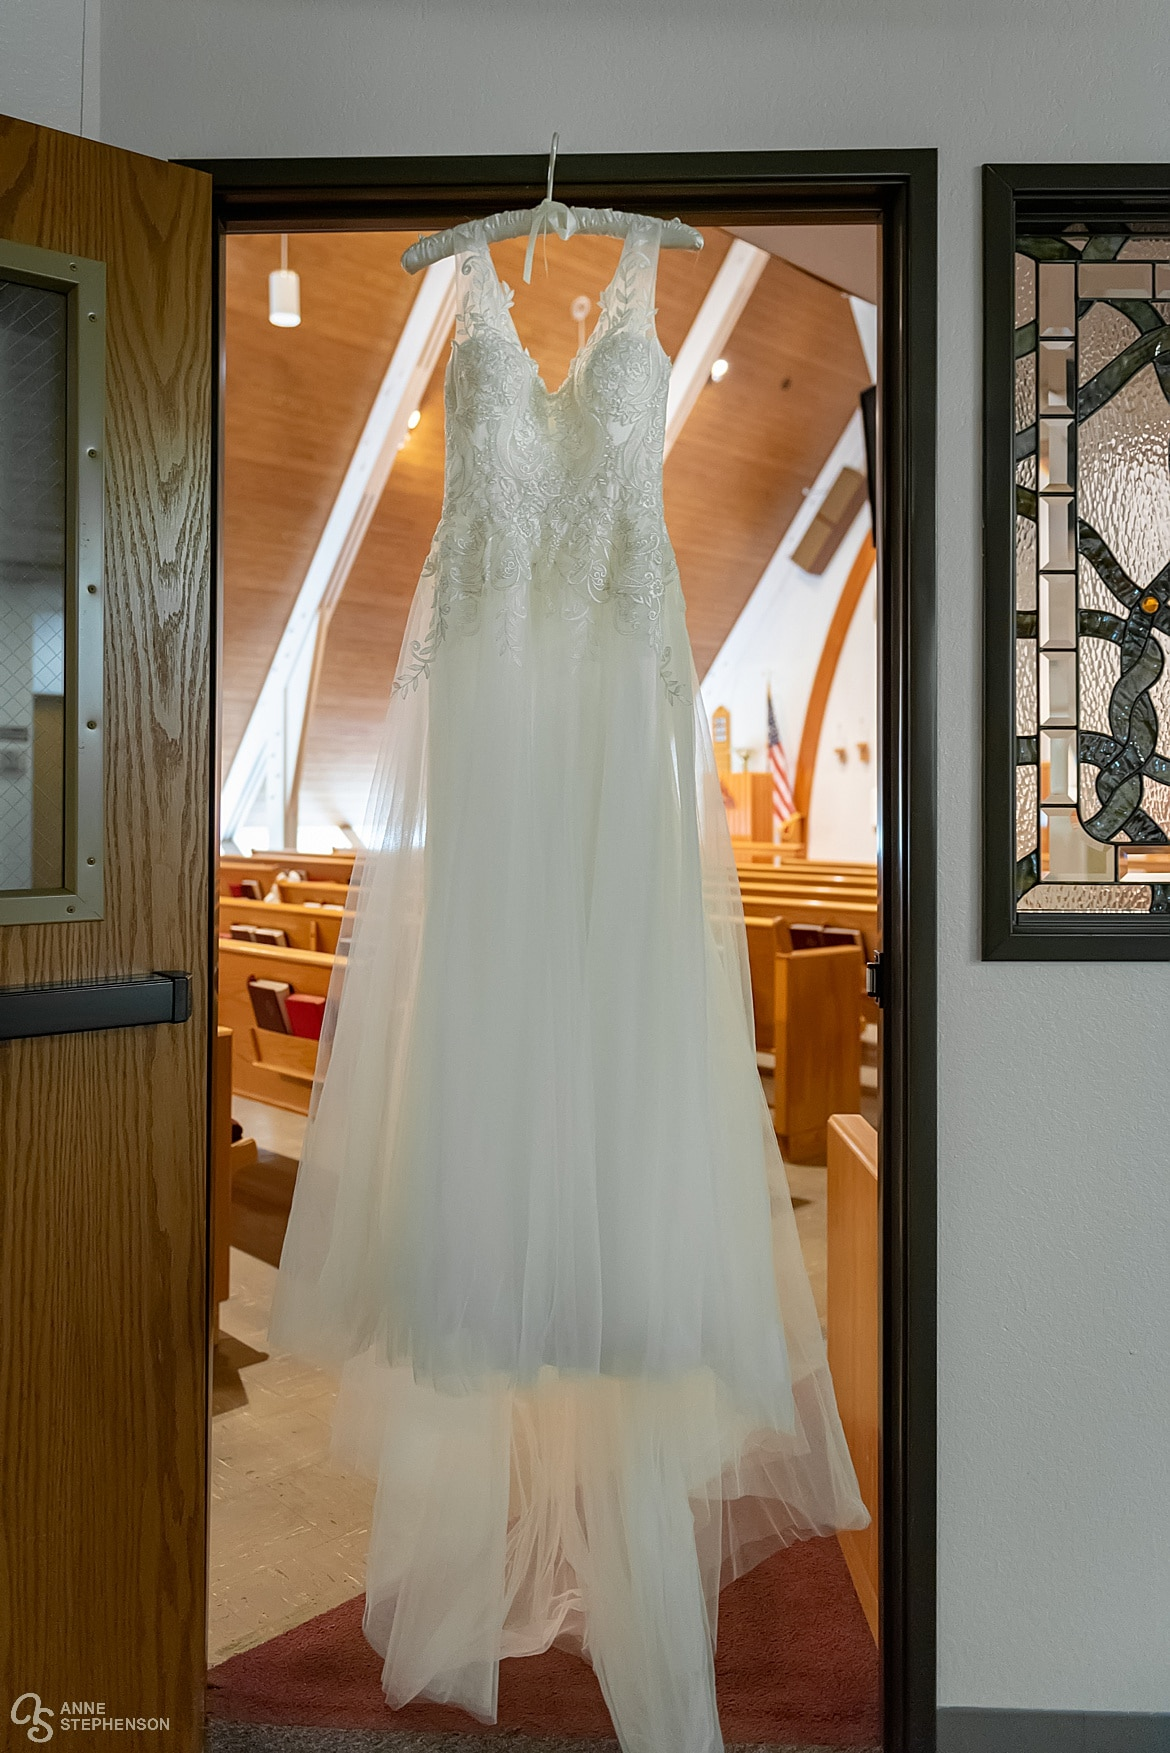 The bride's dress framed by the doorway into the church.